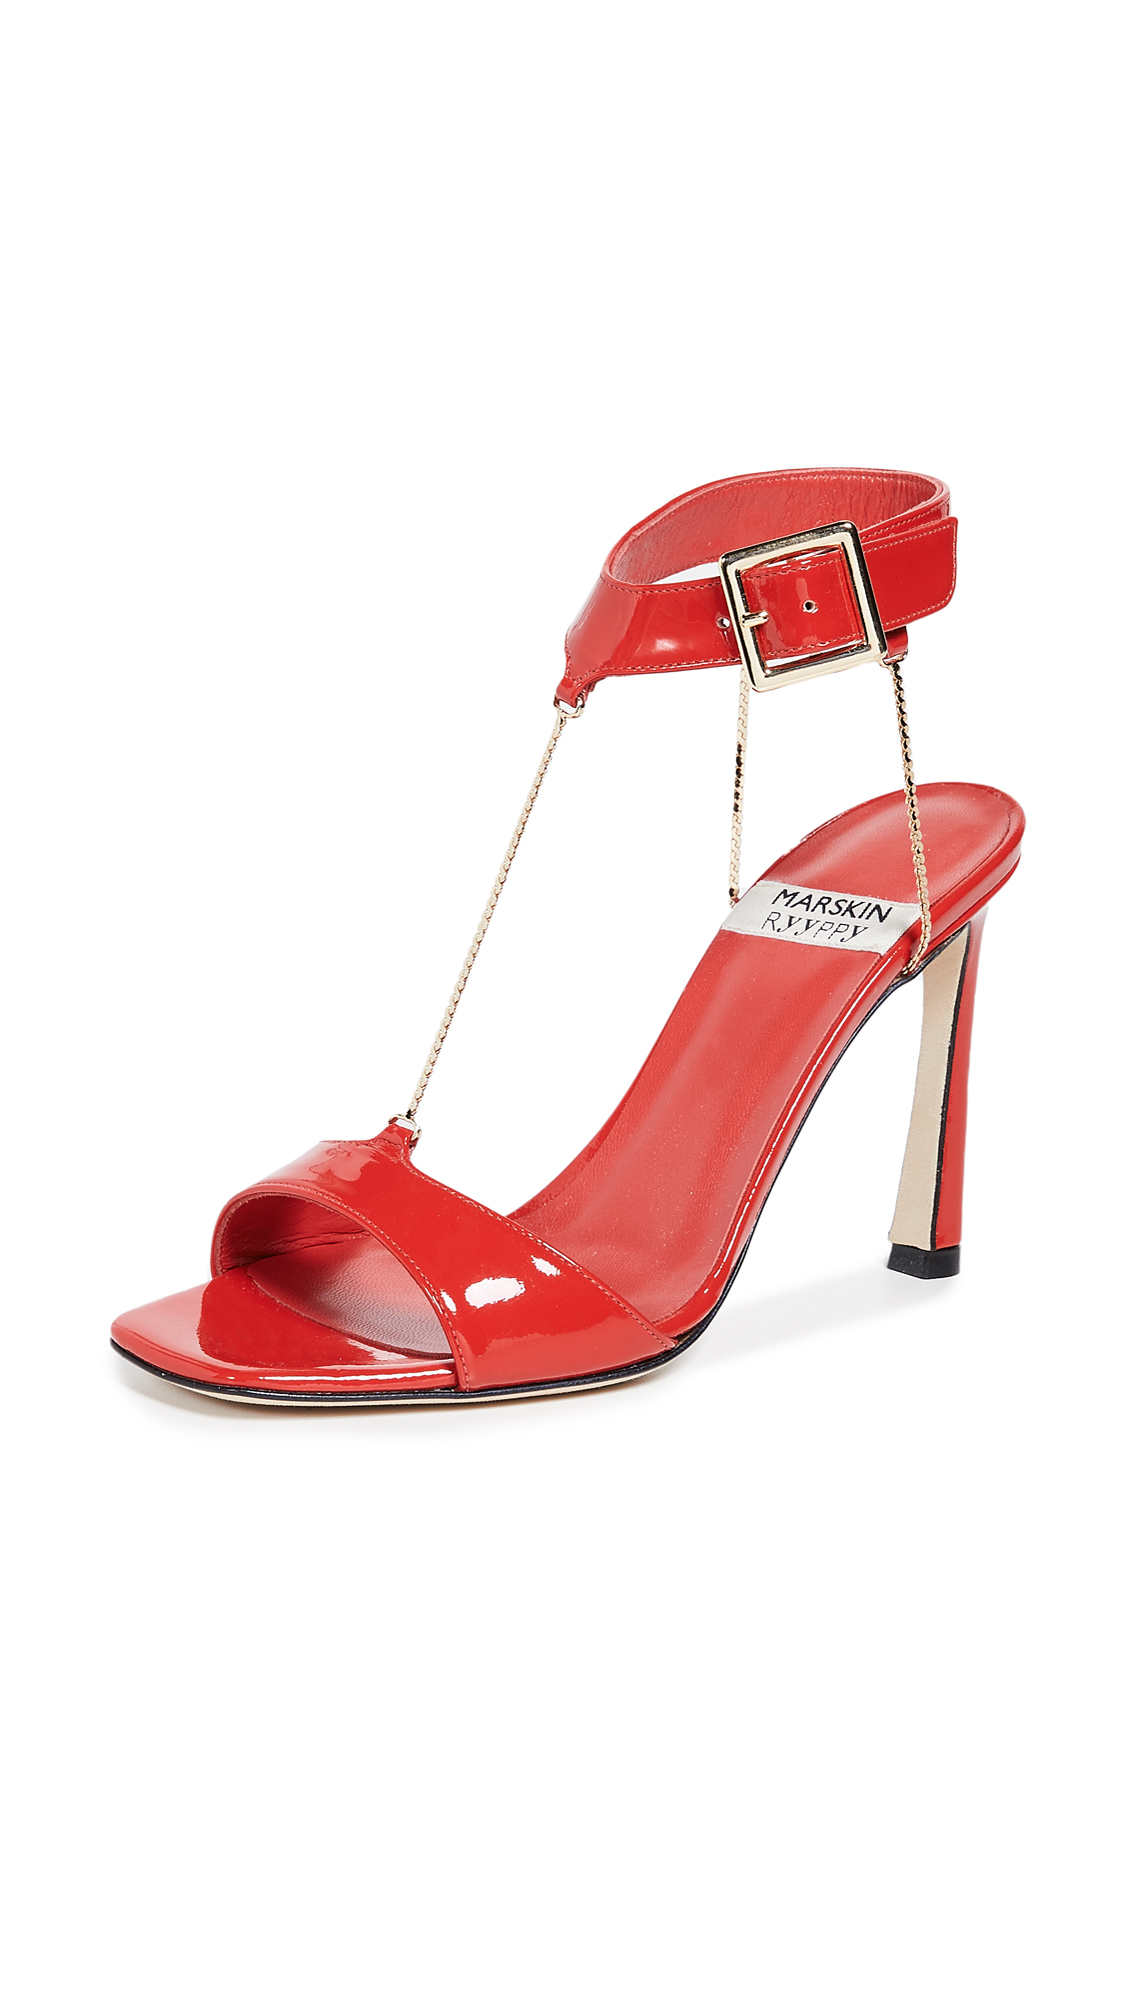 MARSKINRYYPPY Ember Sandals - Adrenaline Red